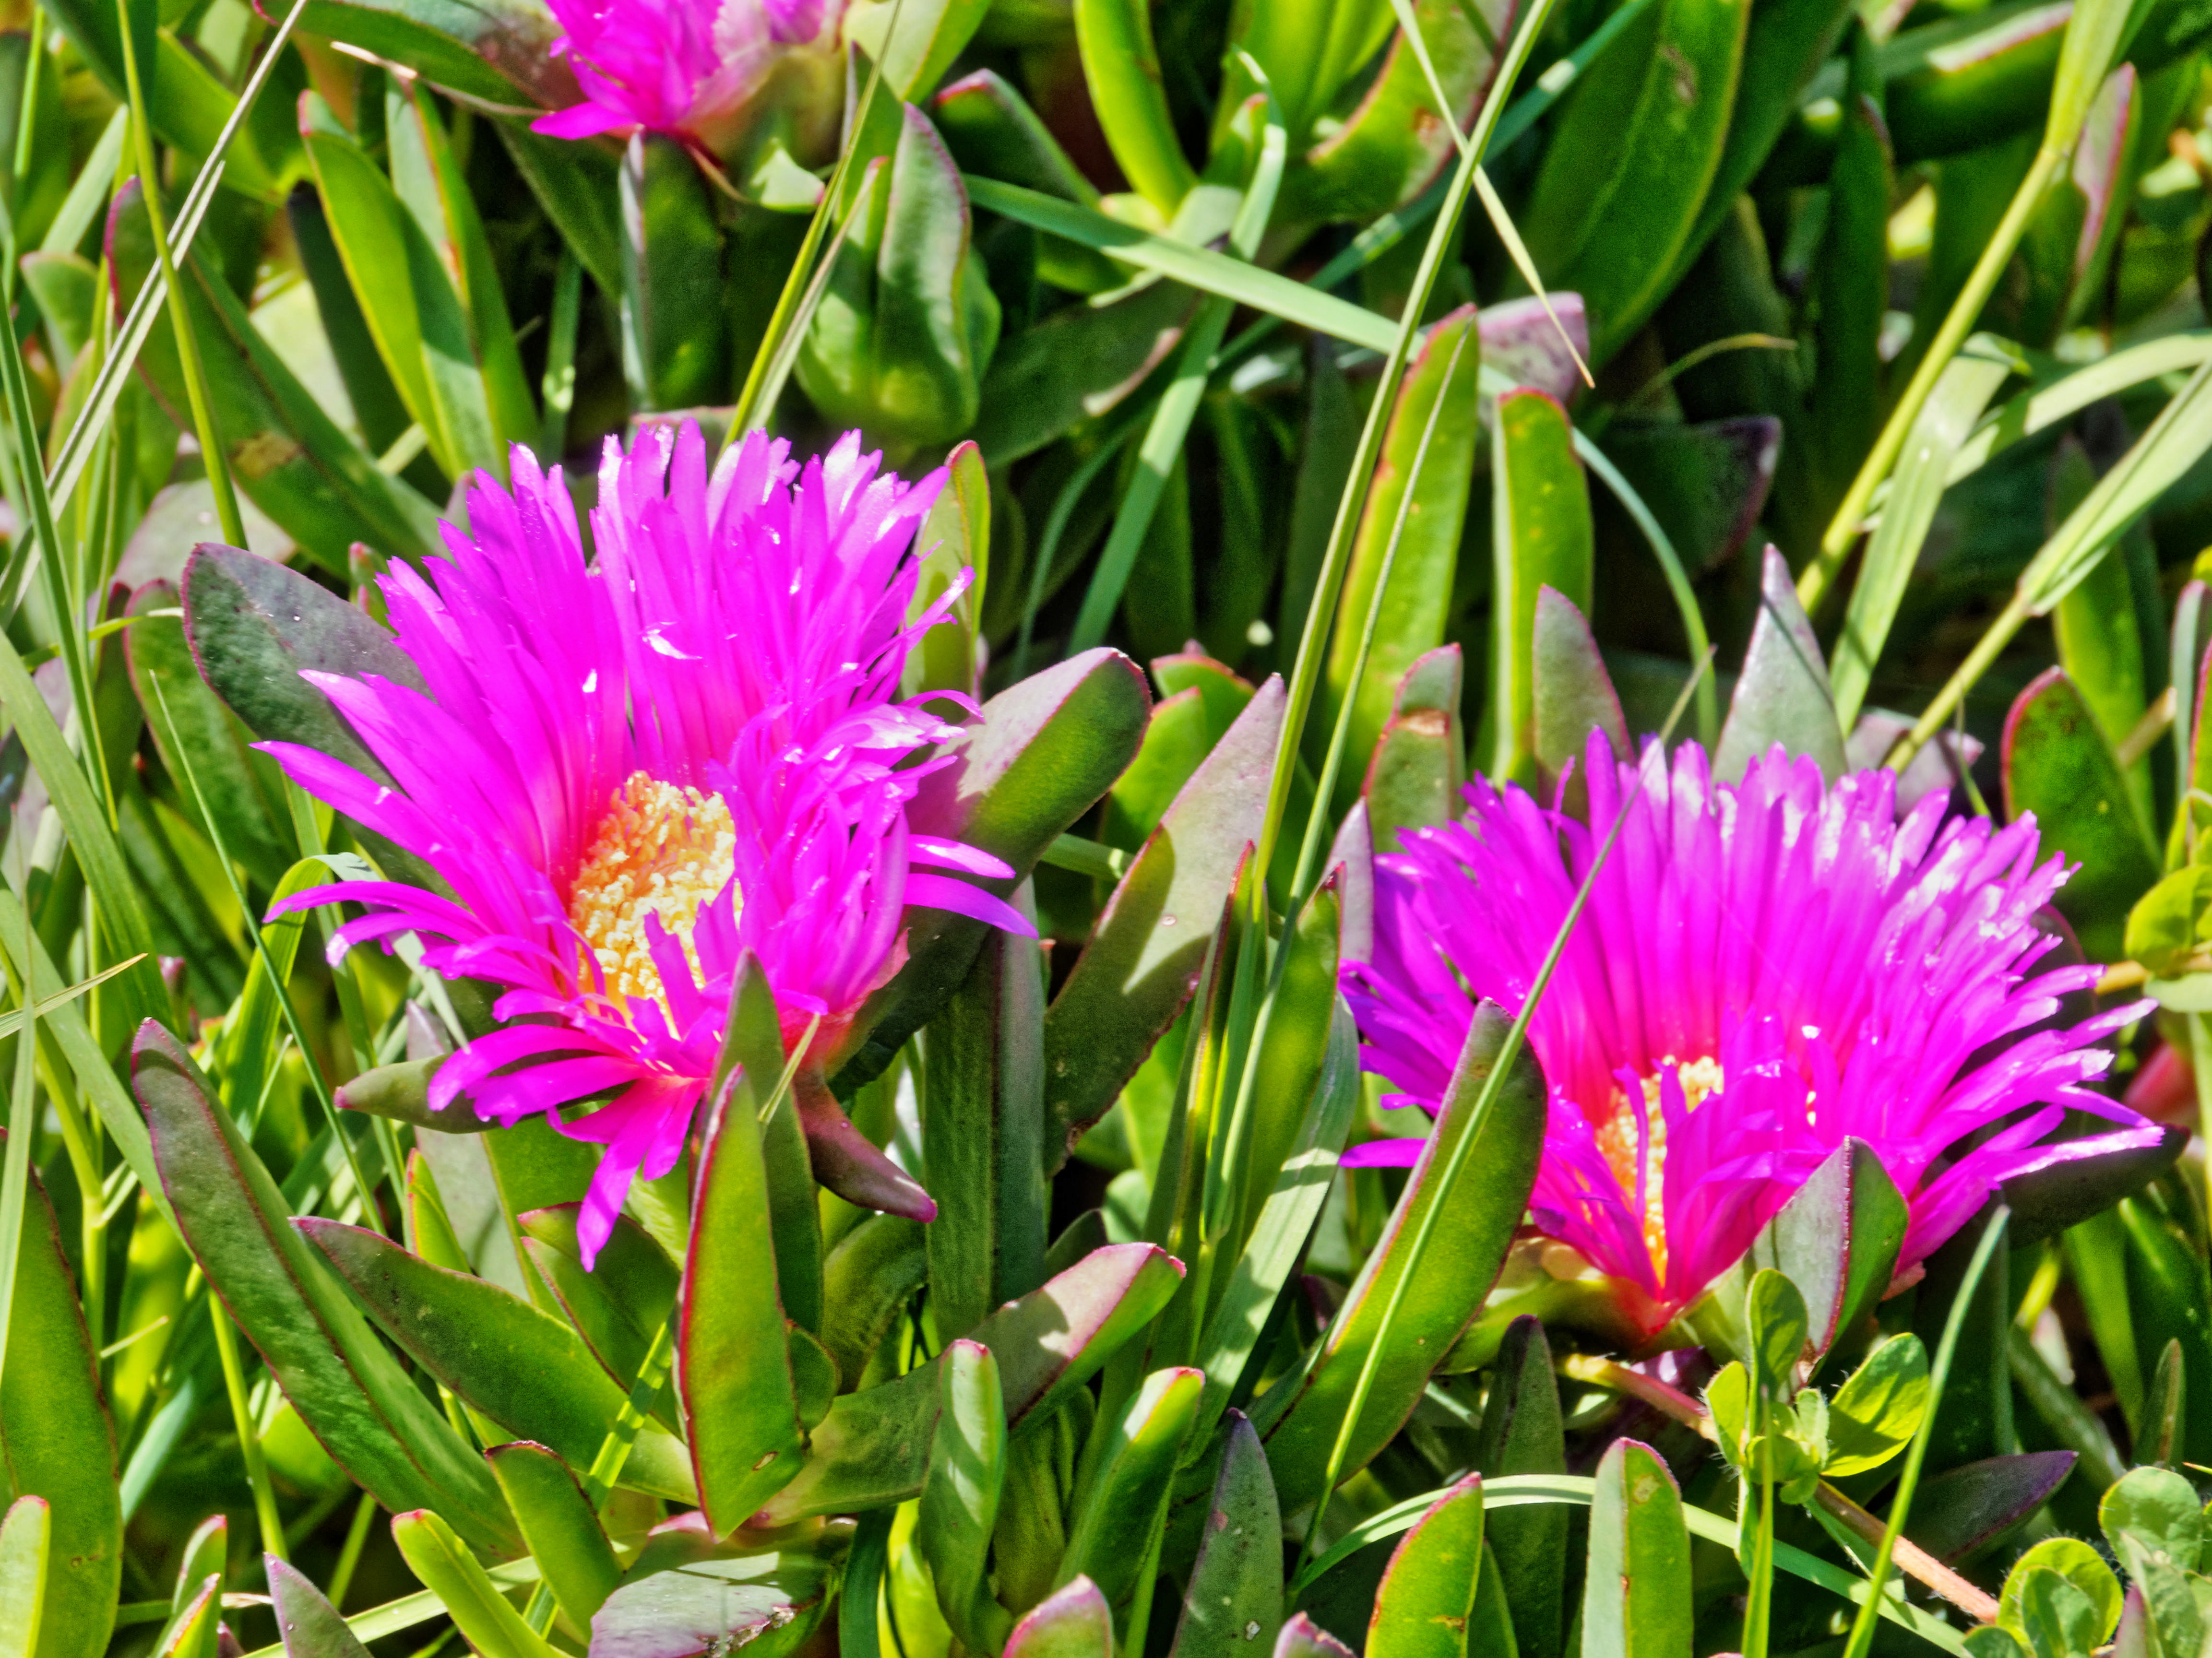 Carpobrotus-2.jpeg